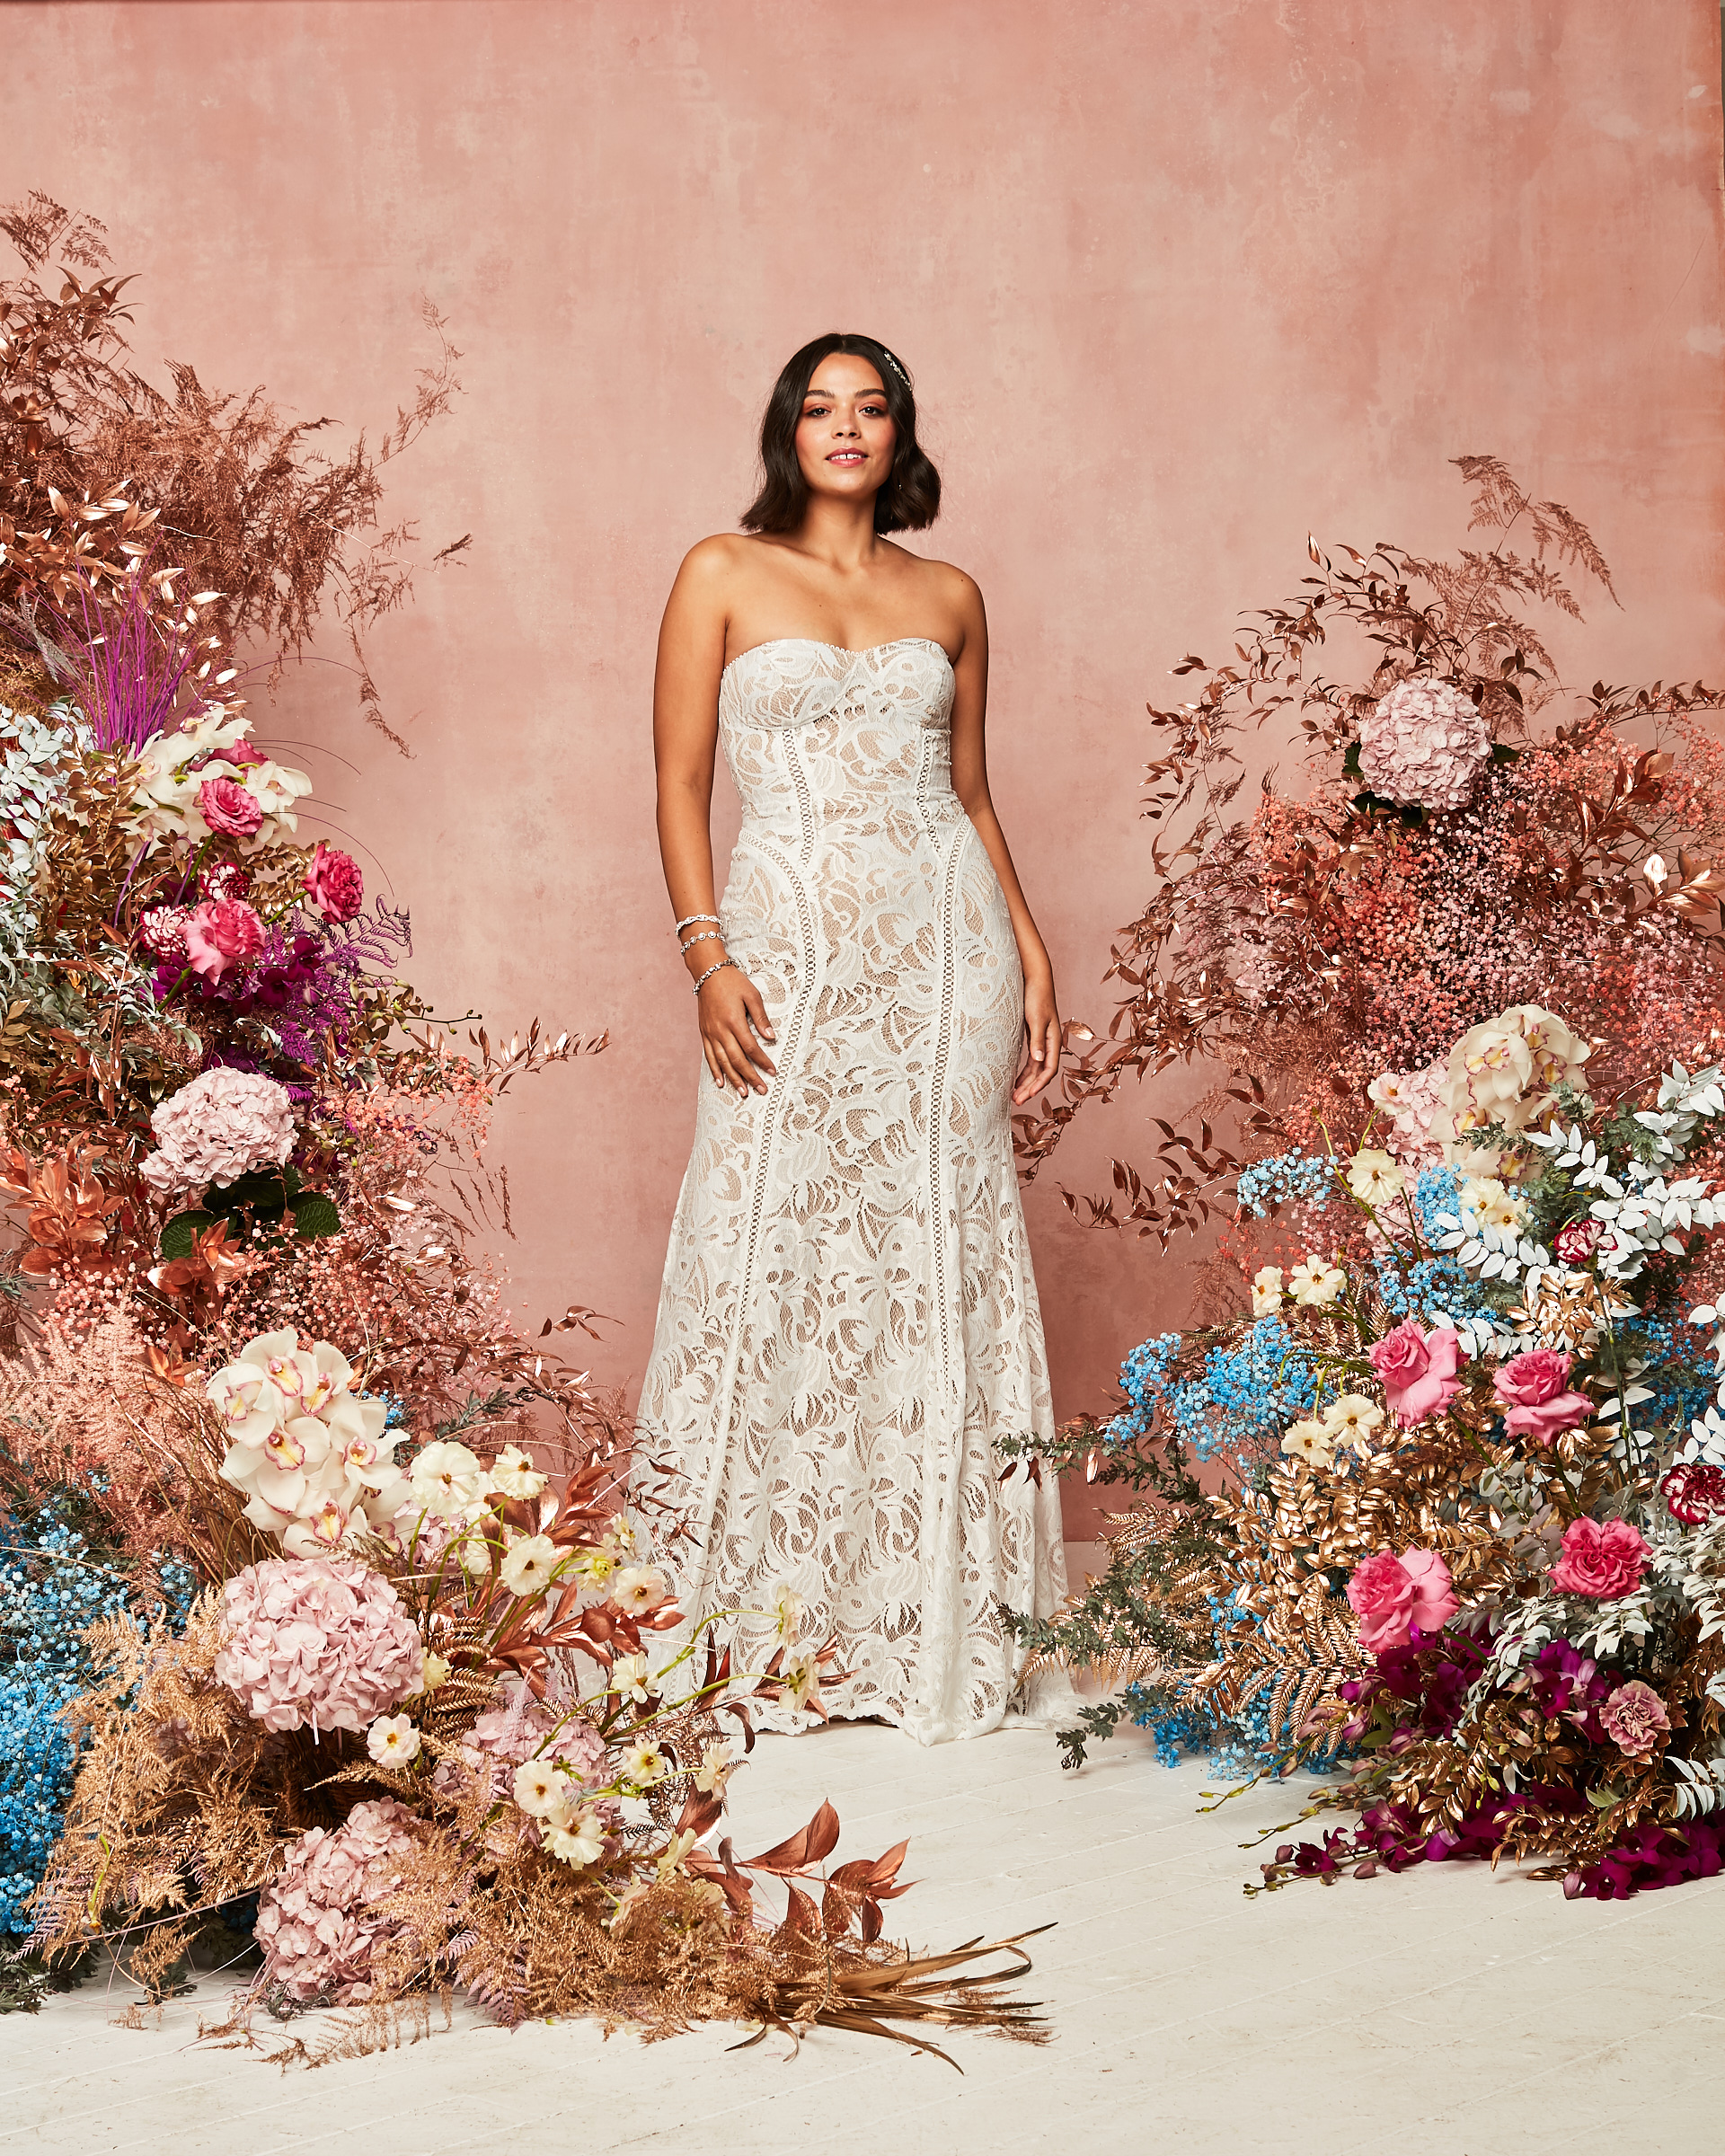 art deco semi-sheer fitted sheeth dress styled with a jacket david's bridal spring 2021 collection